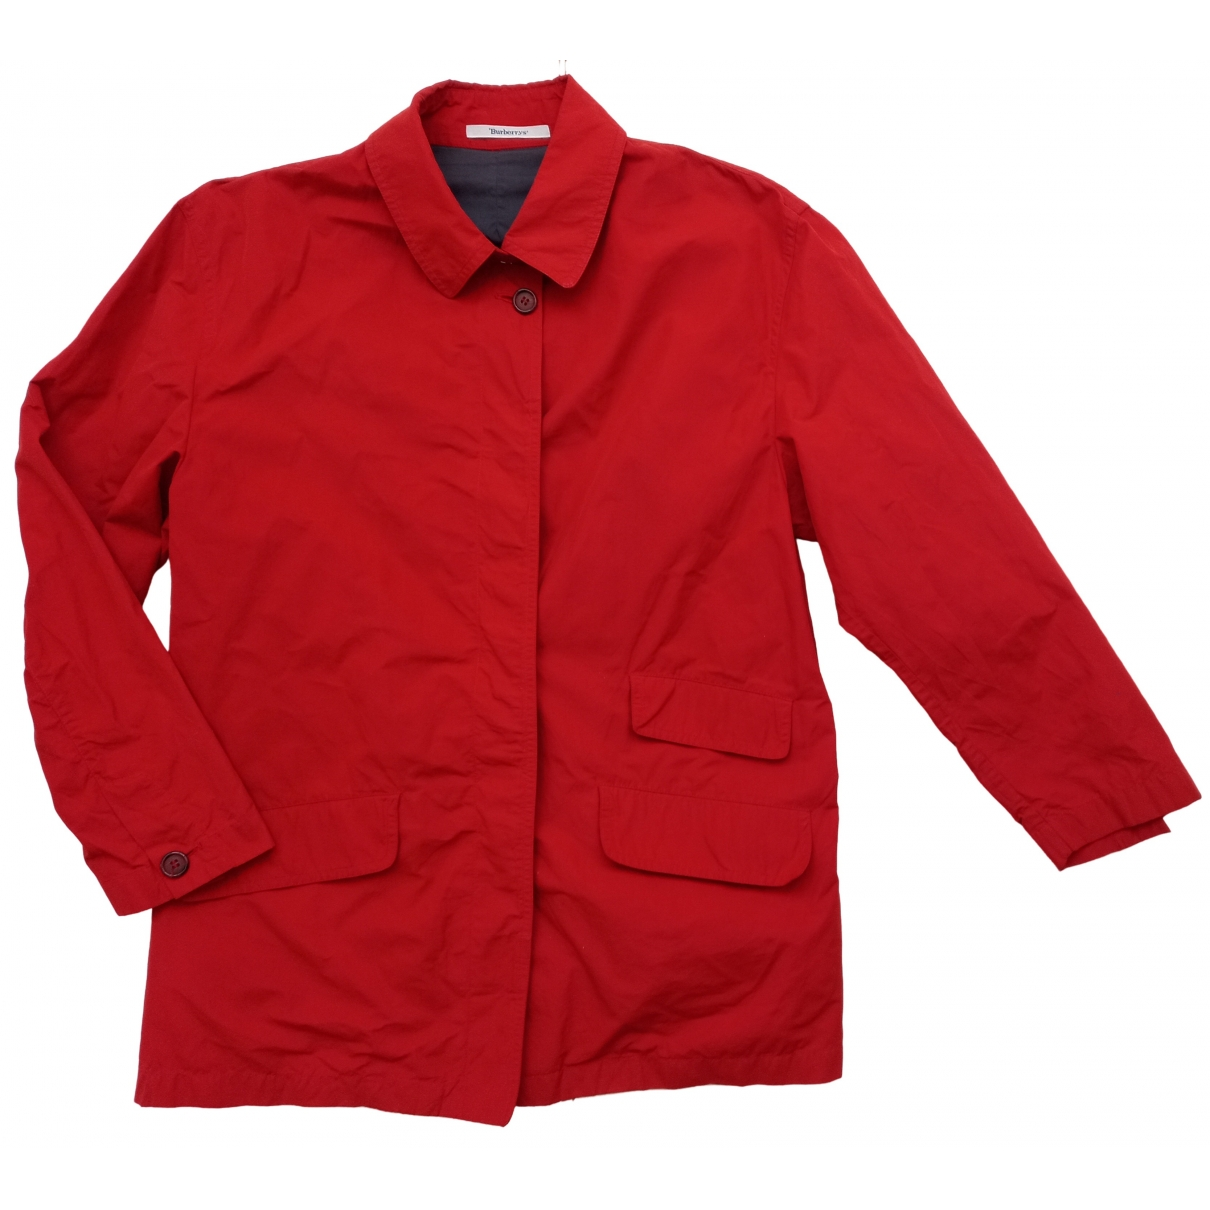 Burberry \N Jacke in  Rot Polyester